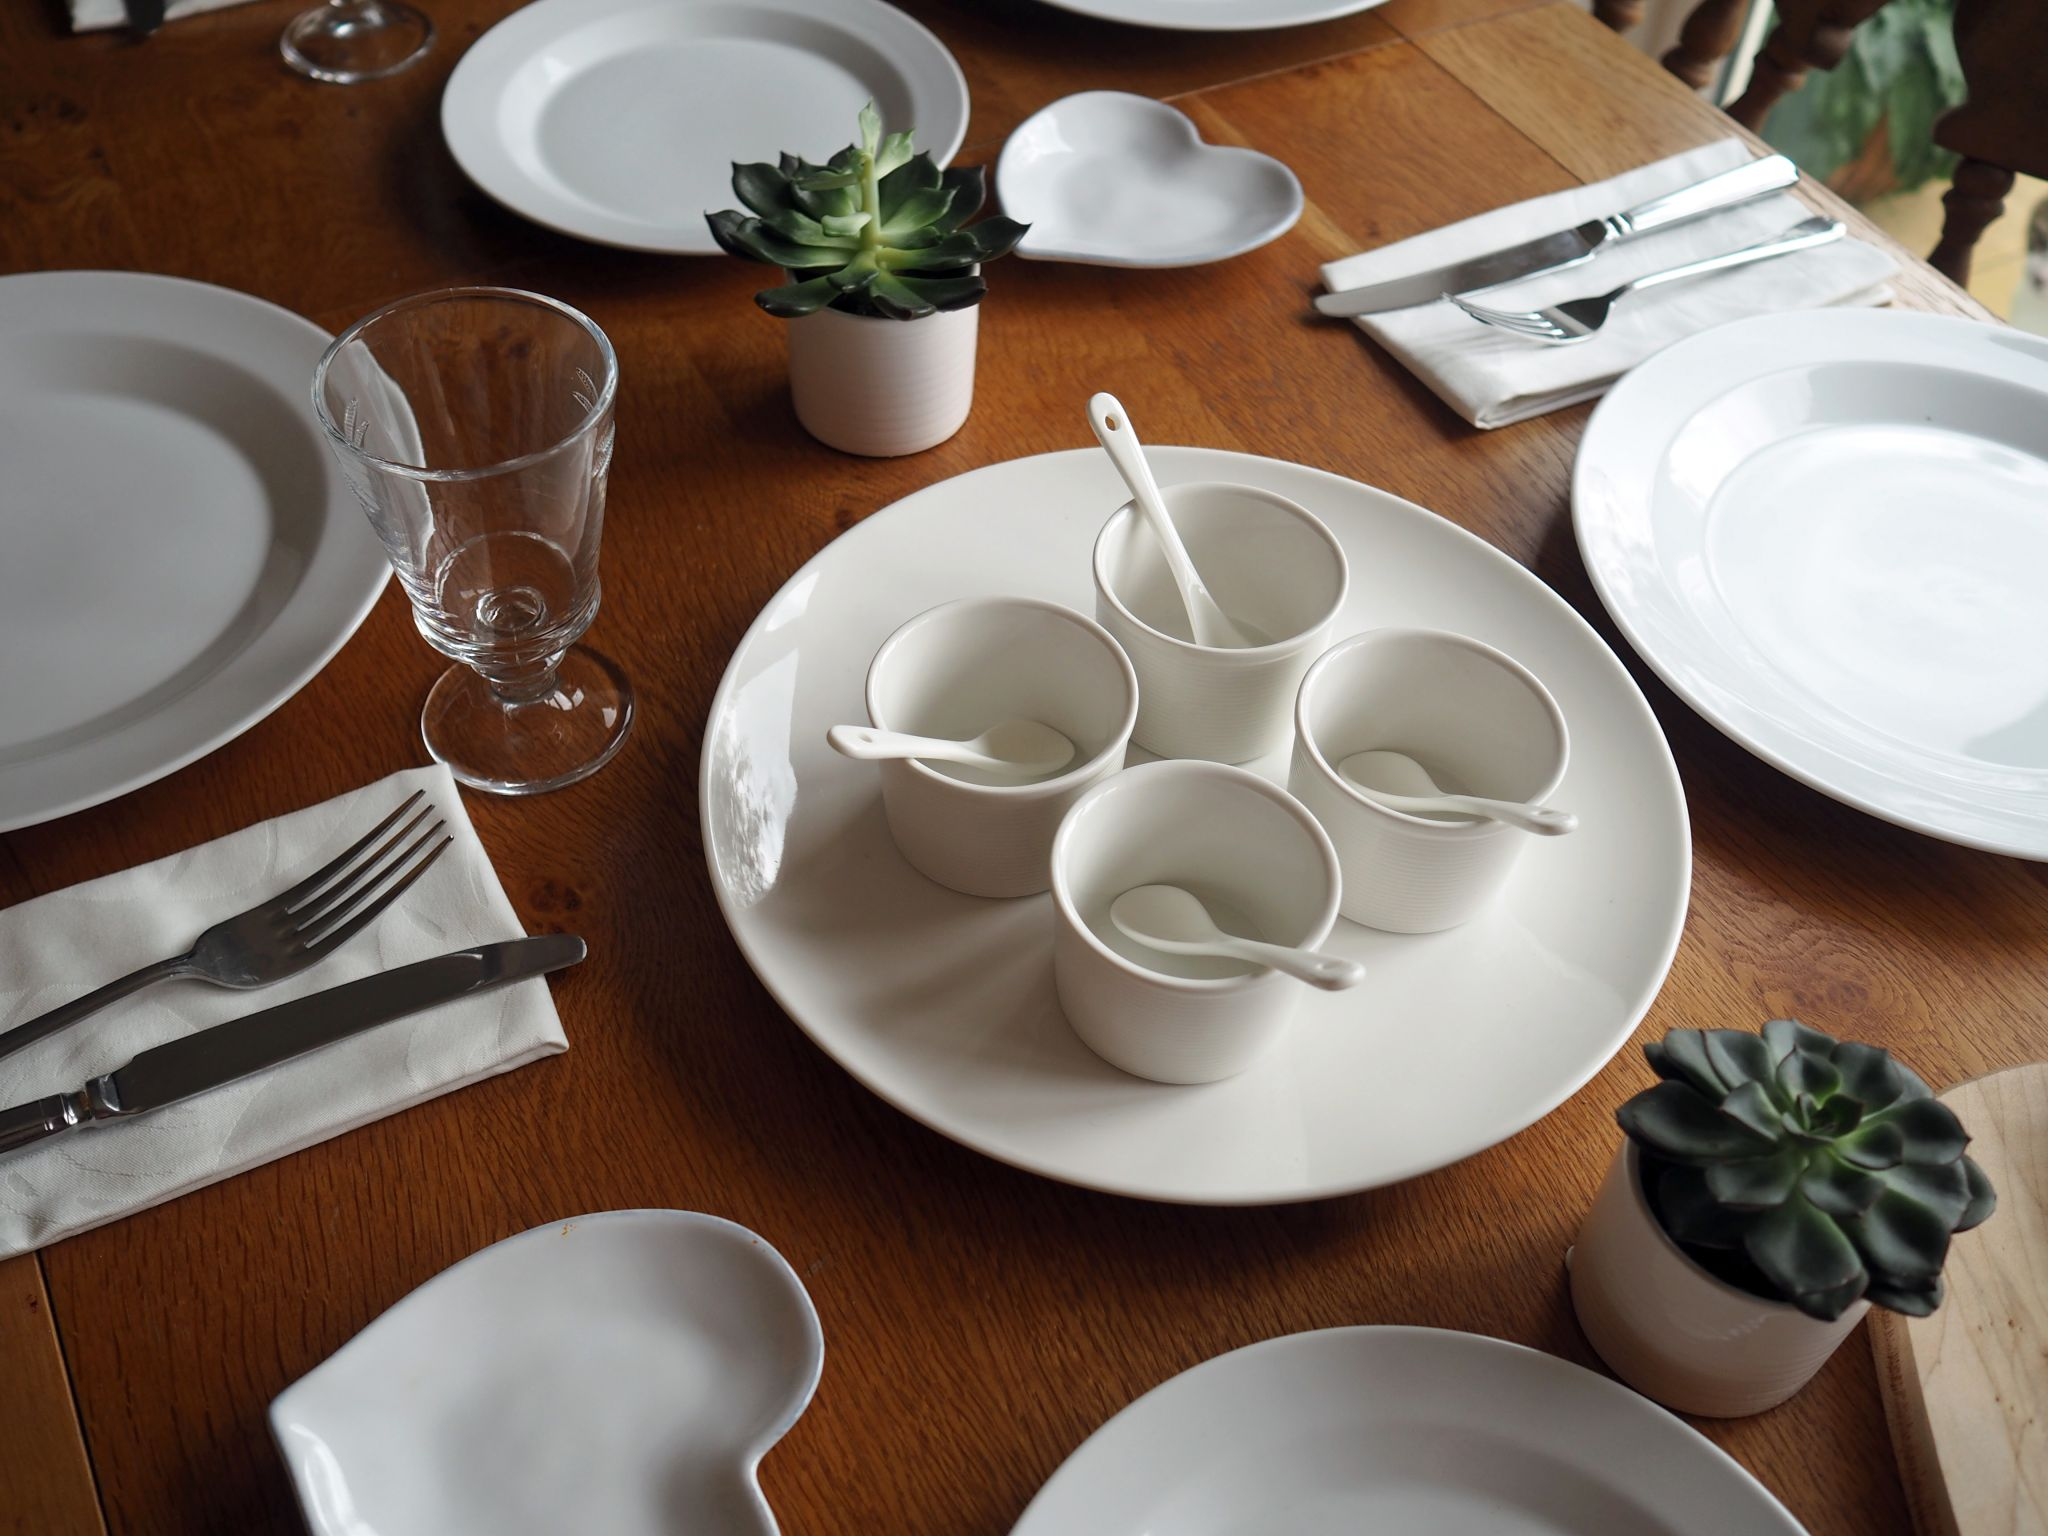 white-table-setting-james-martin-denby-dip-dishes-ramekins-ceramic-spoons